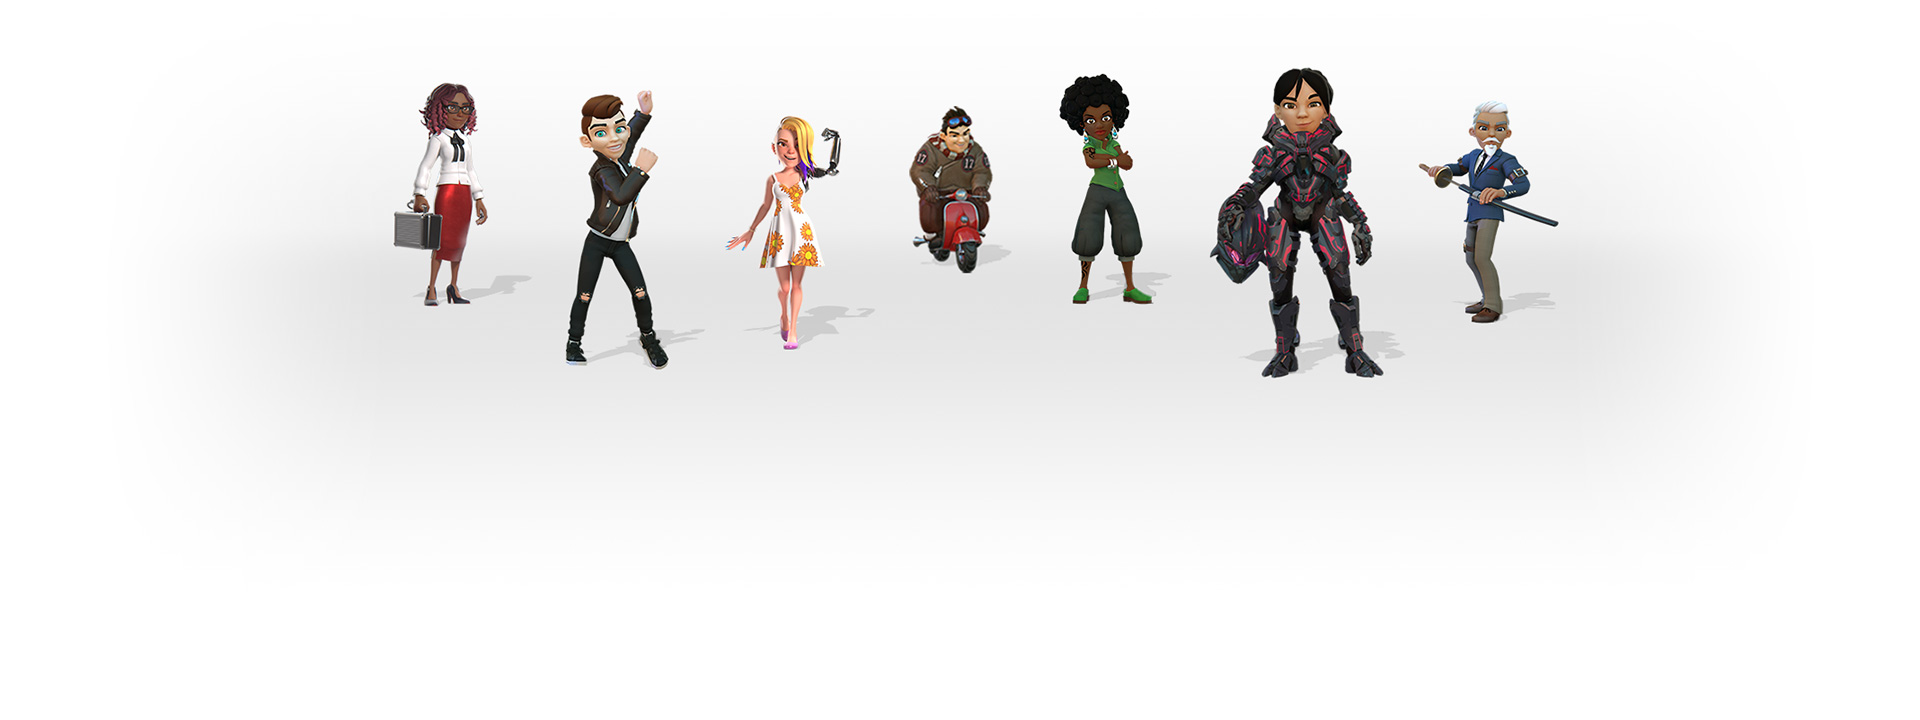 Xbox avatars showing a diverse group of people in different outfits